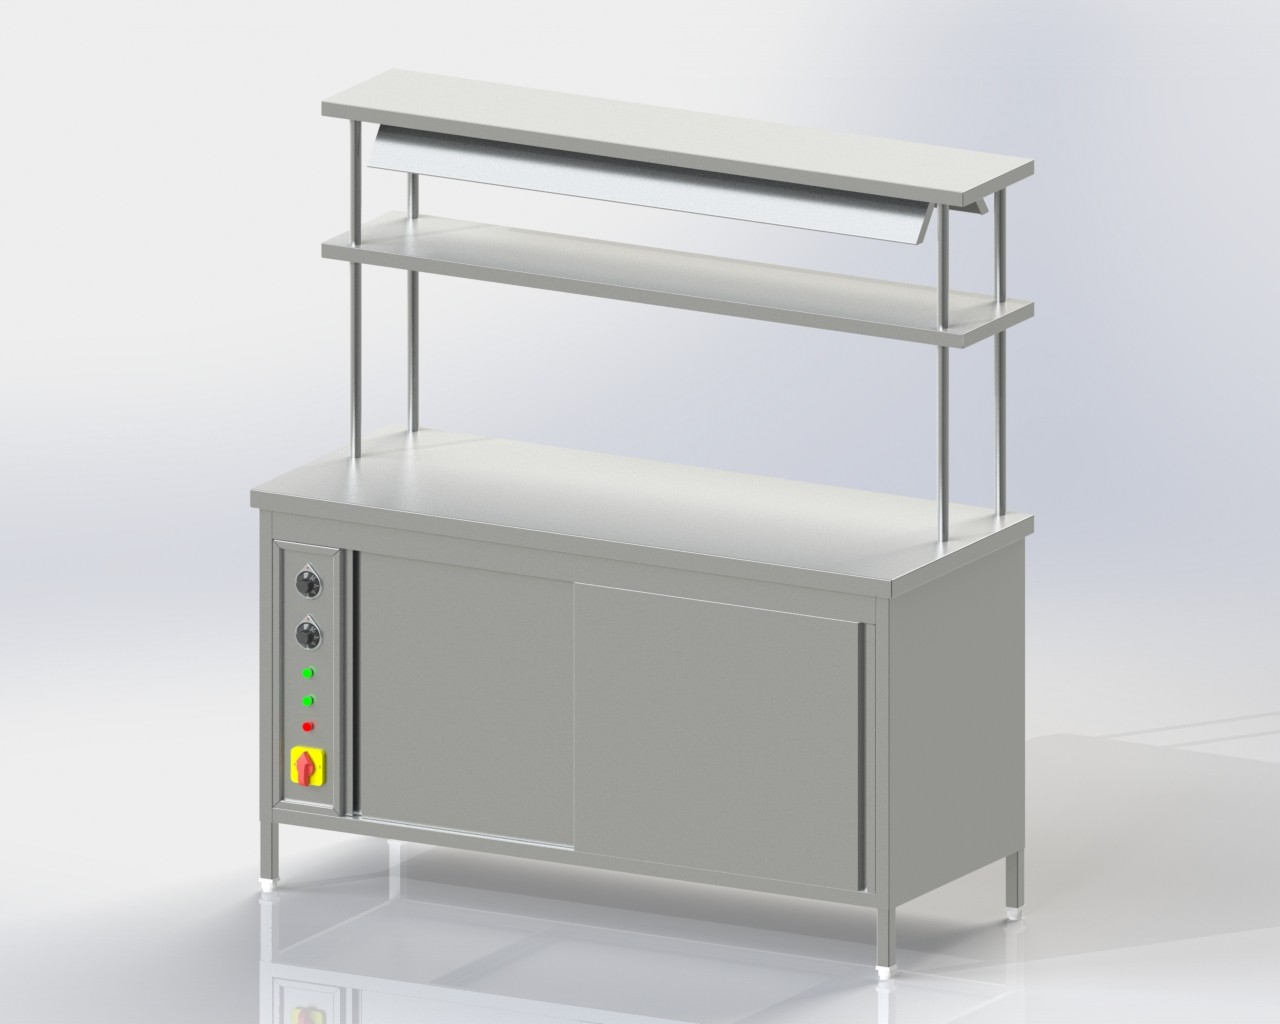 Pick up Counter 2u-s and 2 o-s + hot case IR Heater